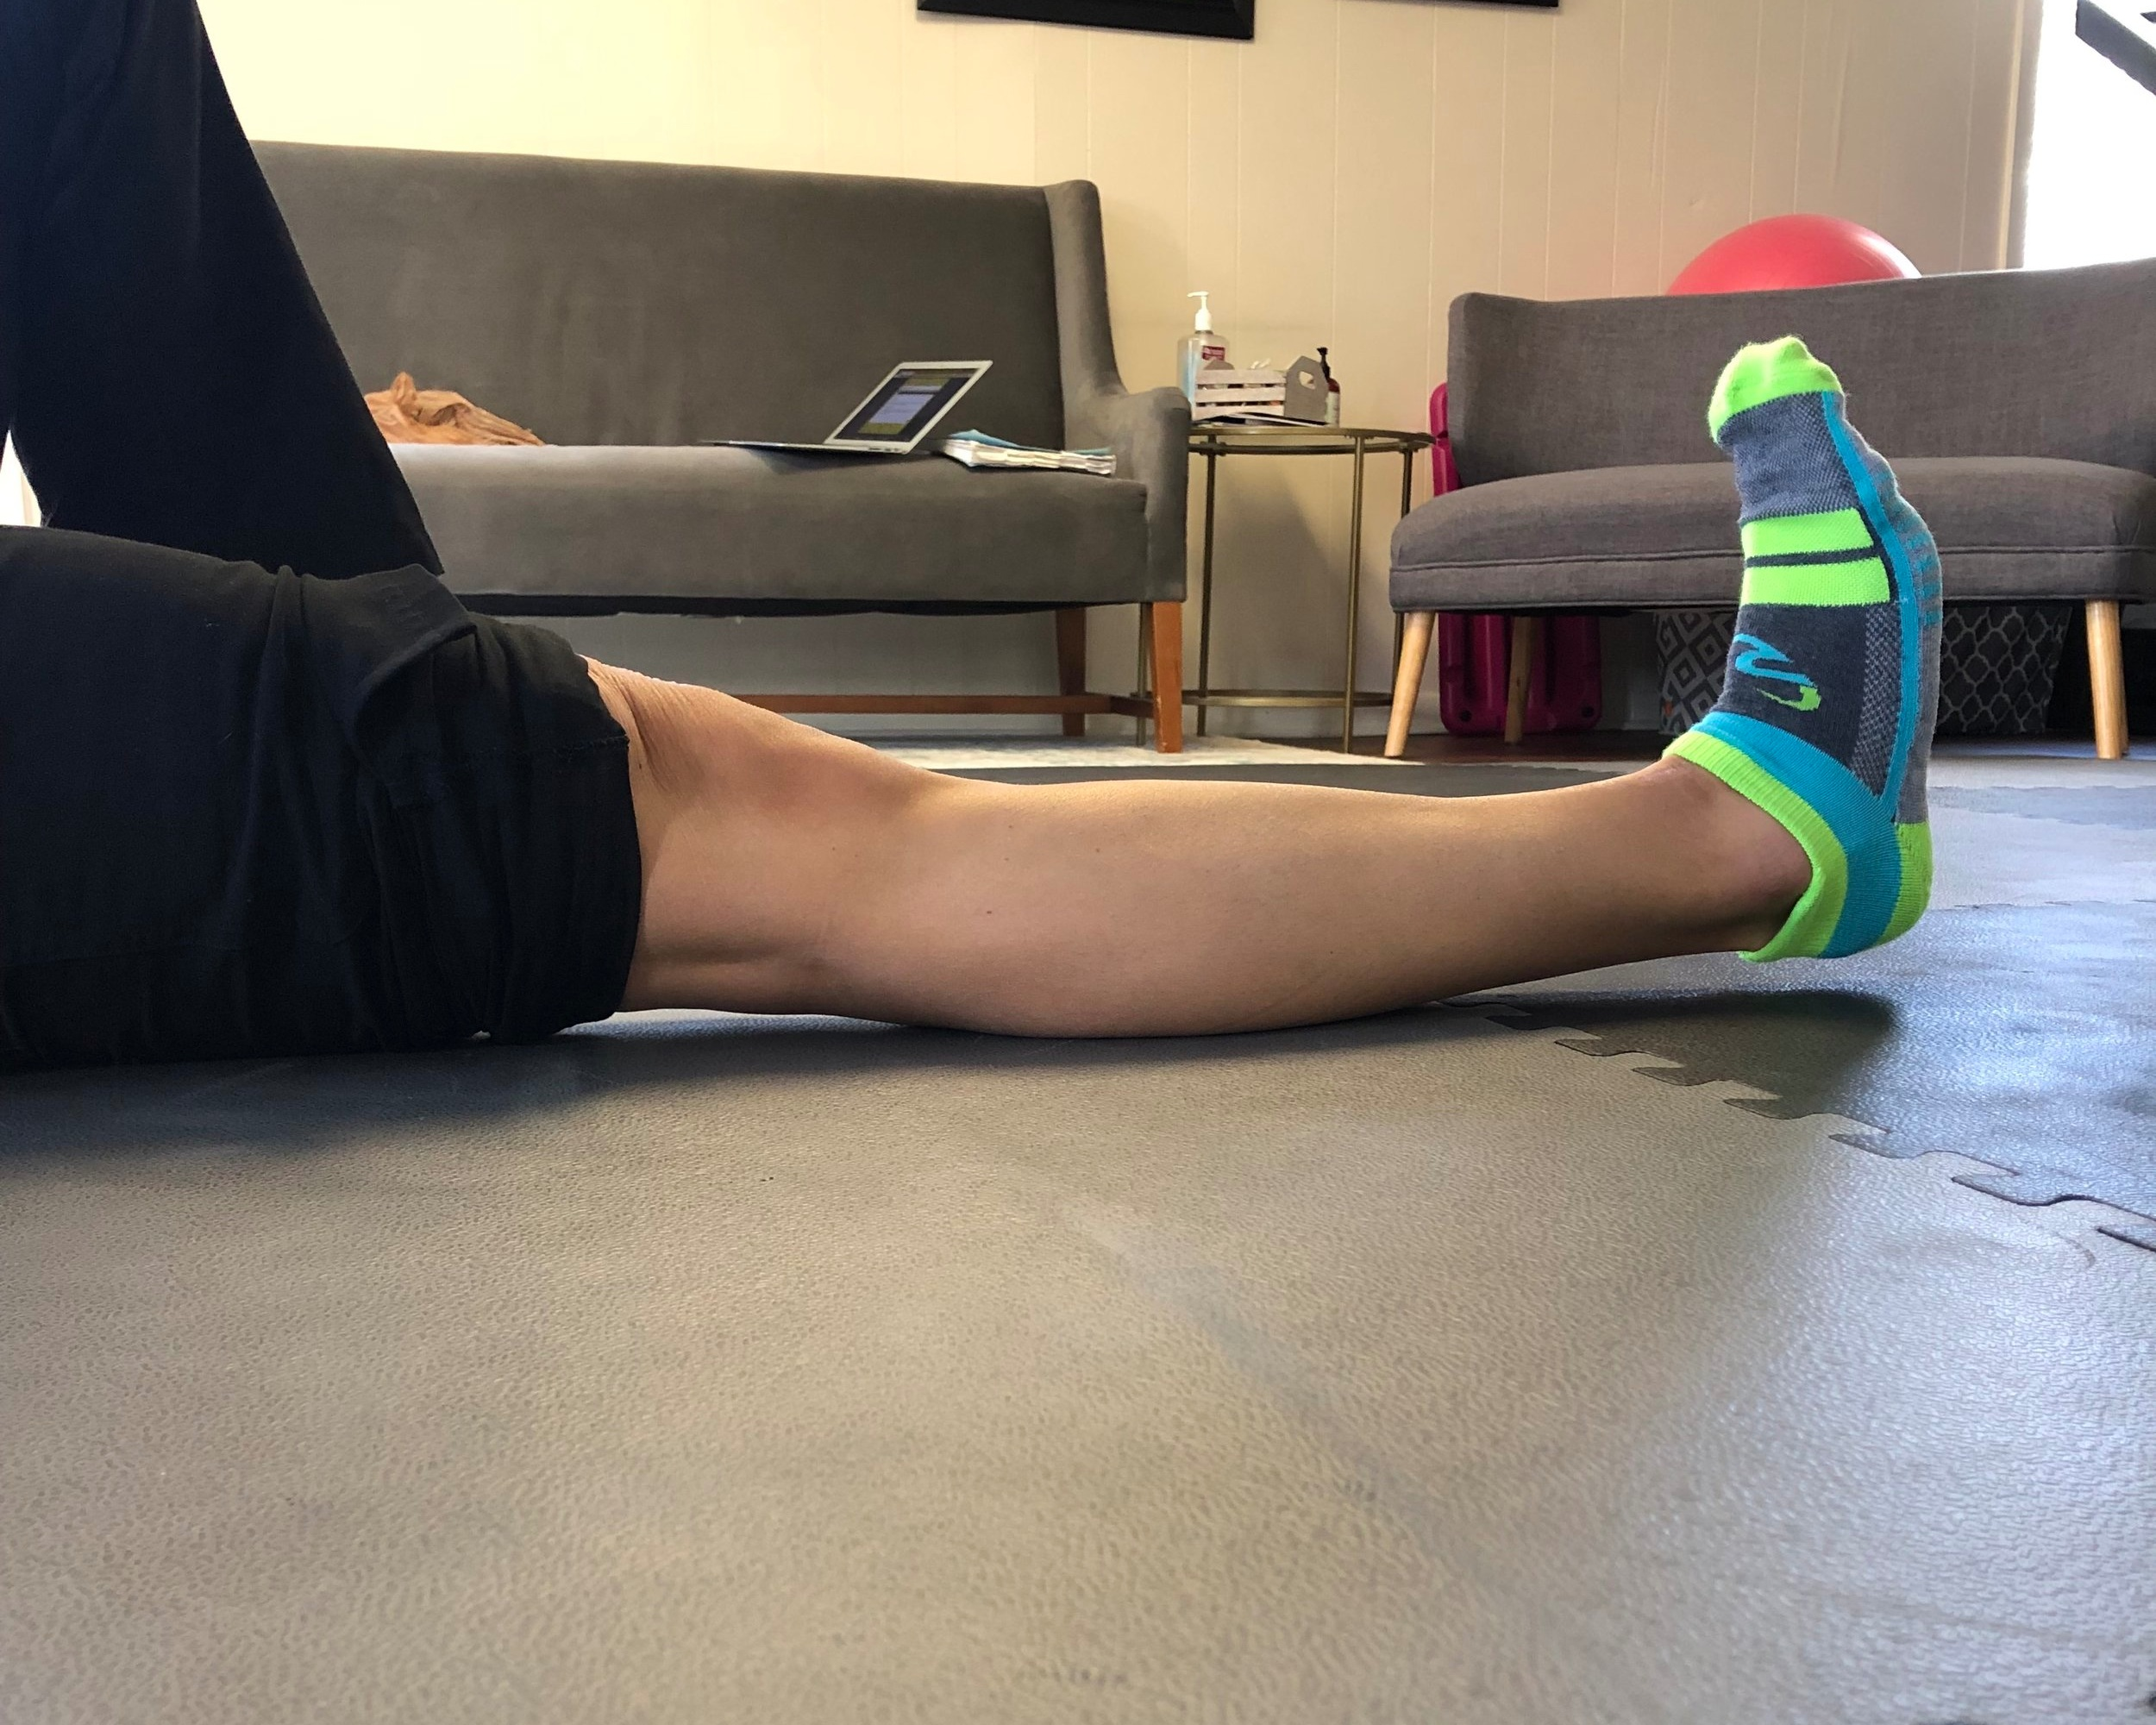 Knee Extension Self Test